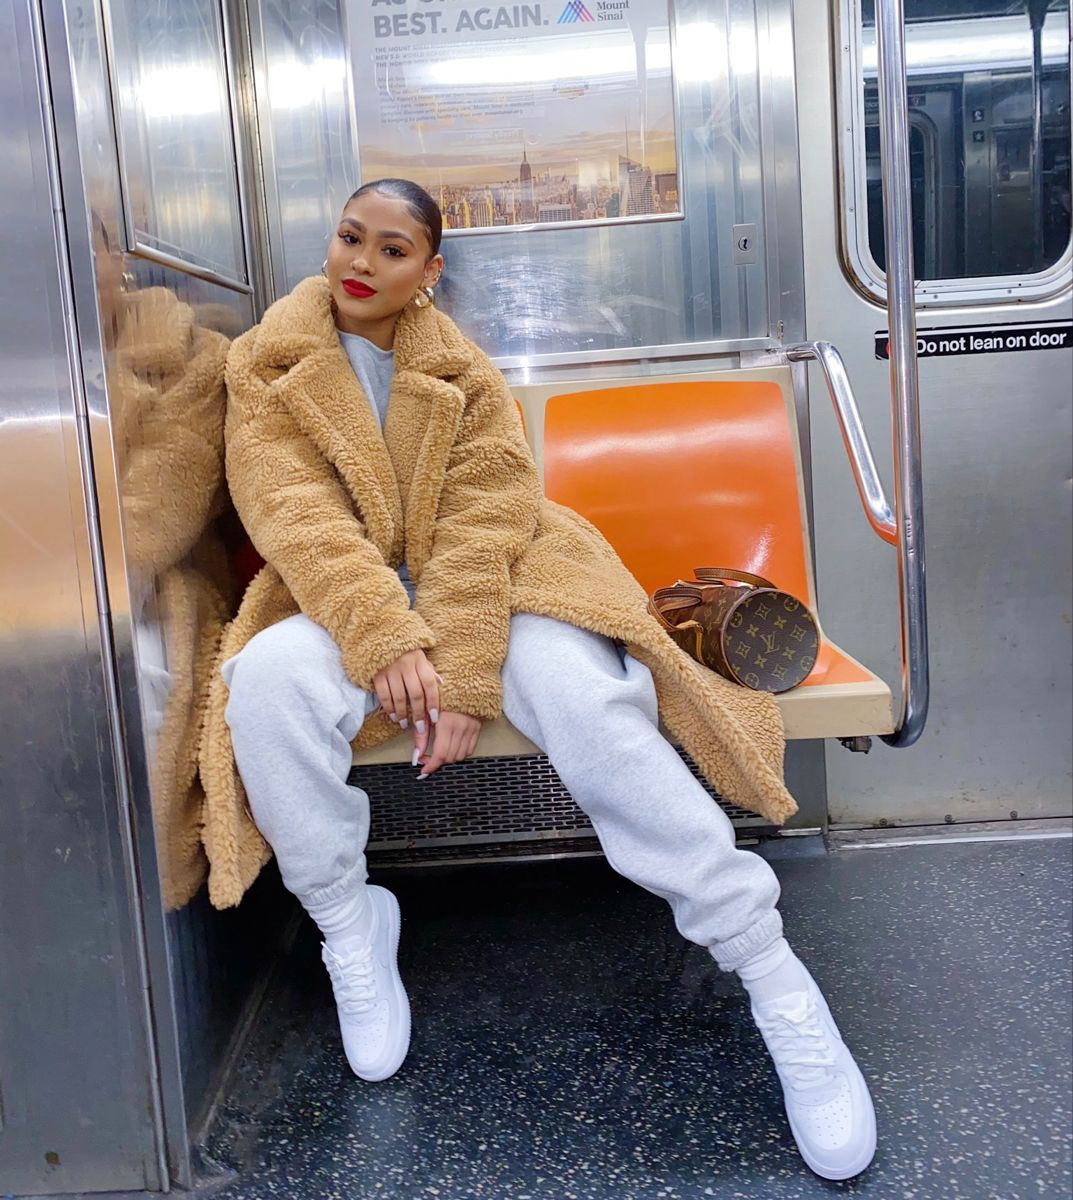 Naysha Wiley fur clothing, fur colour outfit, hot legs